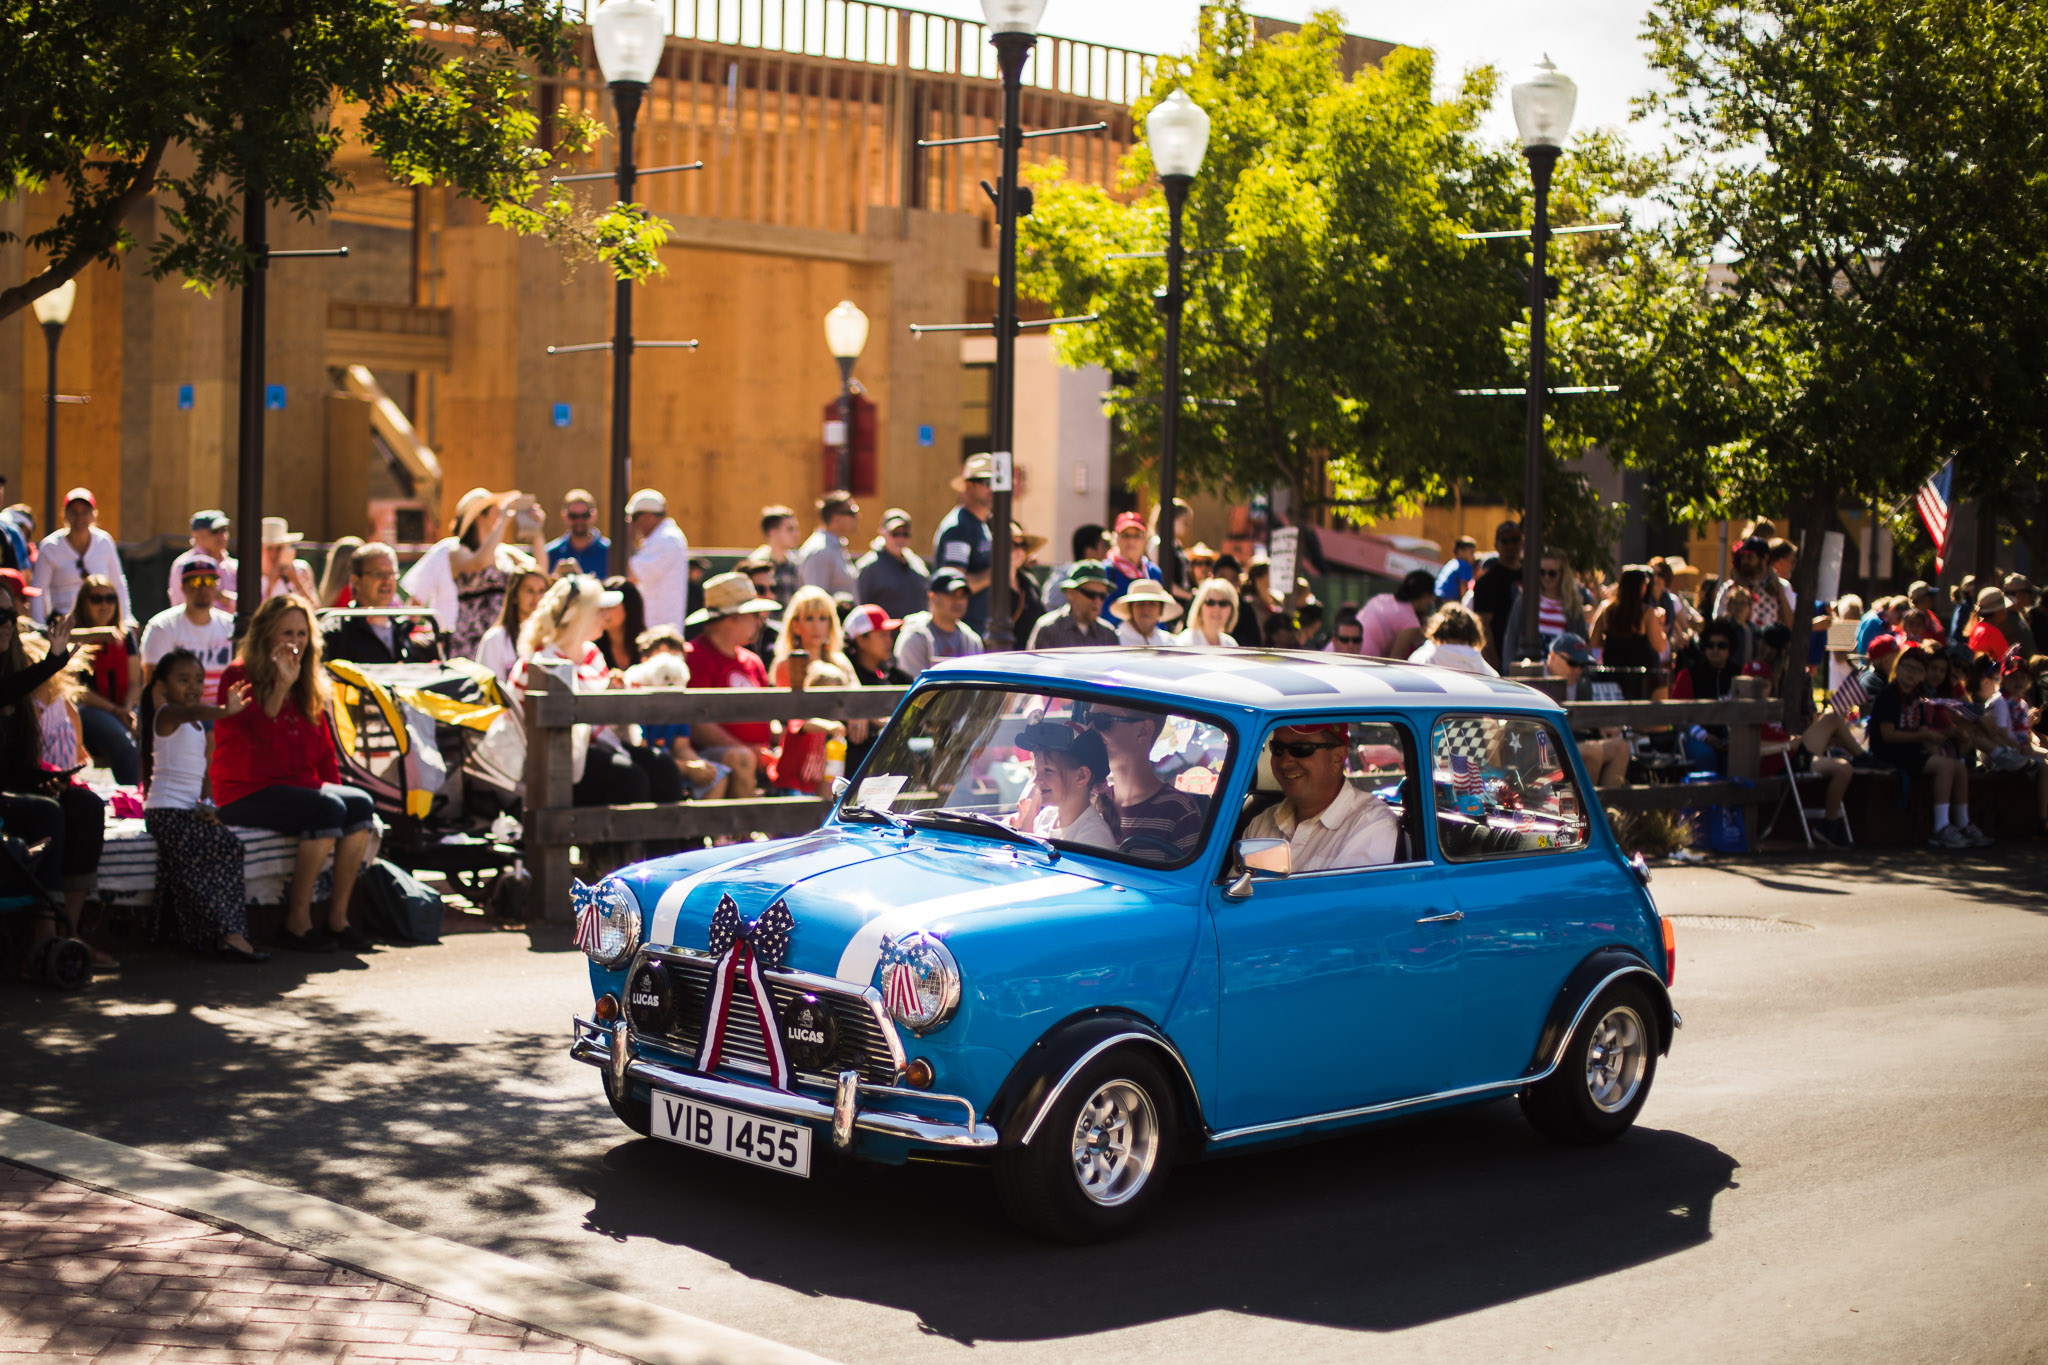 Archer_Inspired_Photography_Morgan_Hill_California_4th_of_july_parade-26.jpg